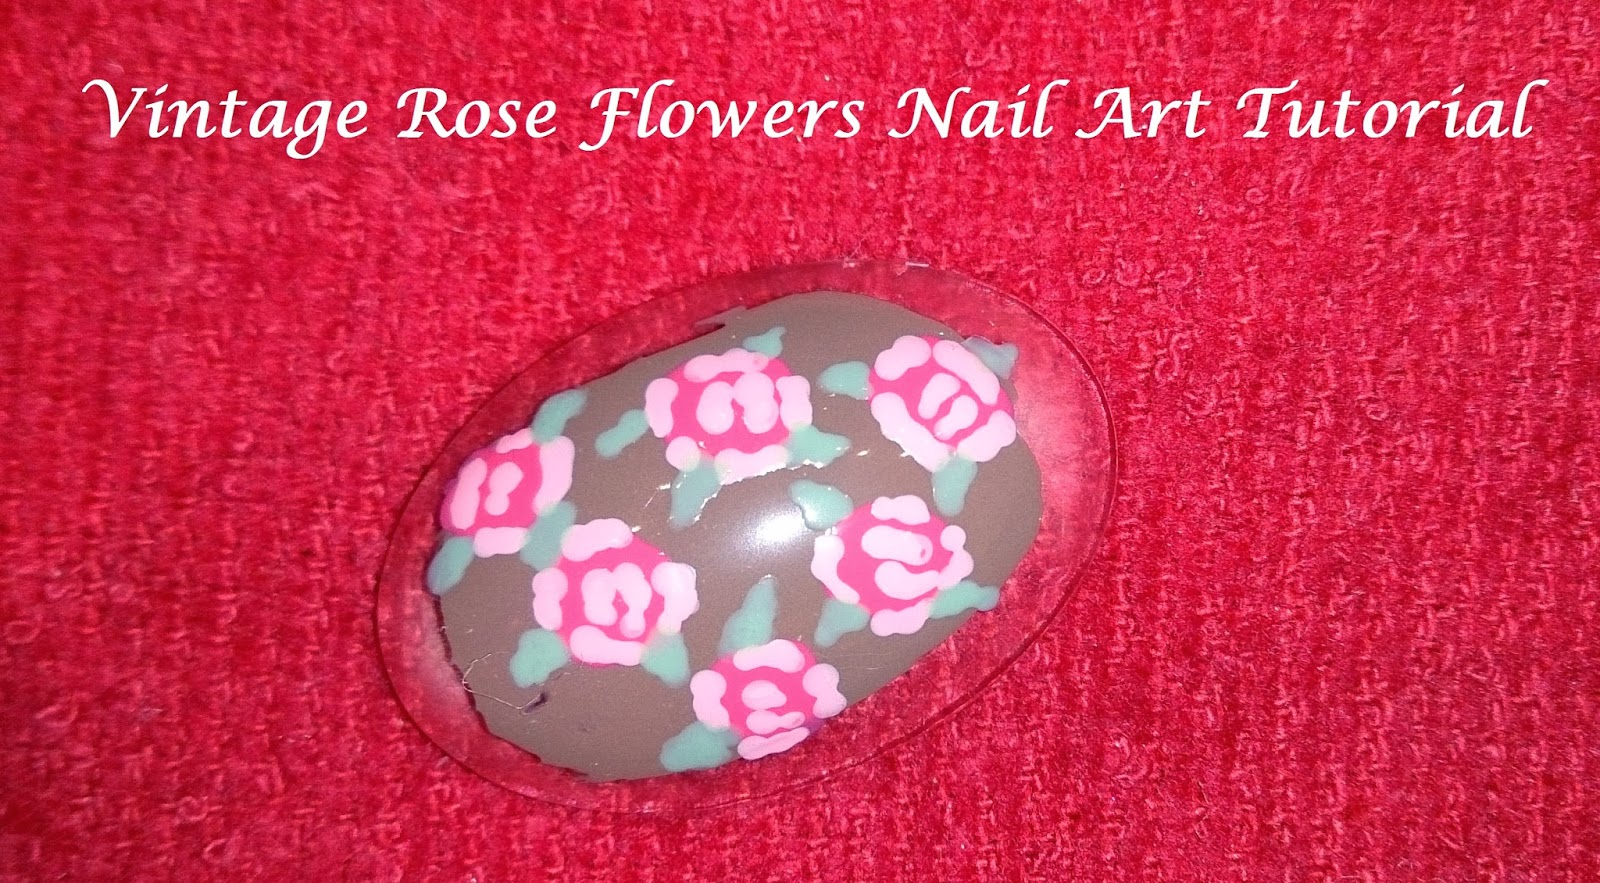 vintage rose flowers nail art flower dotting tool youtube video tutorial how to create nails